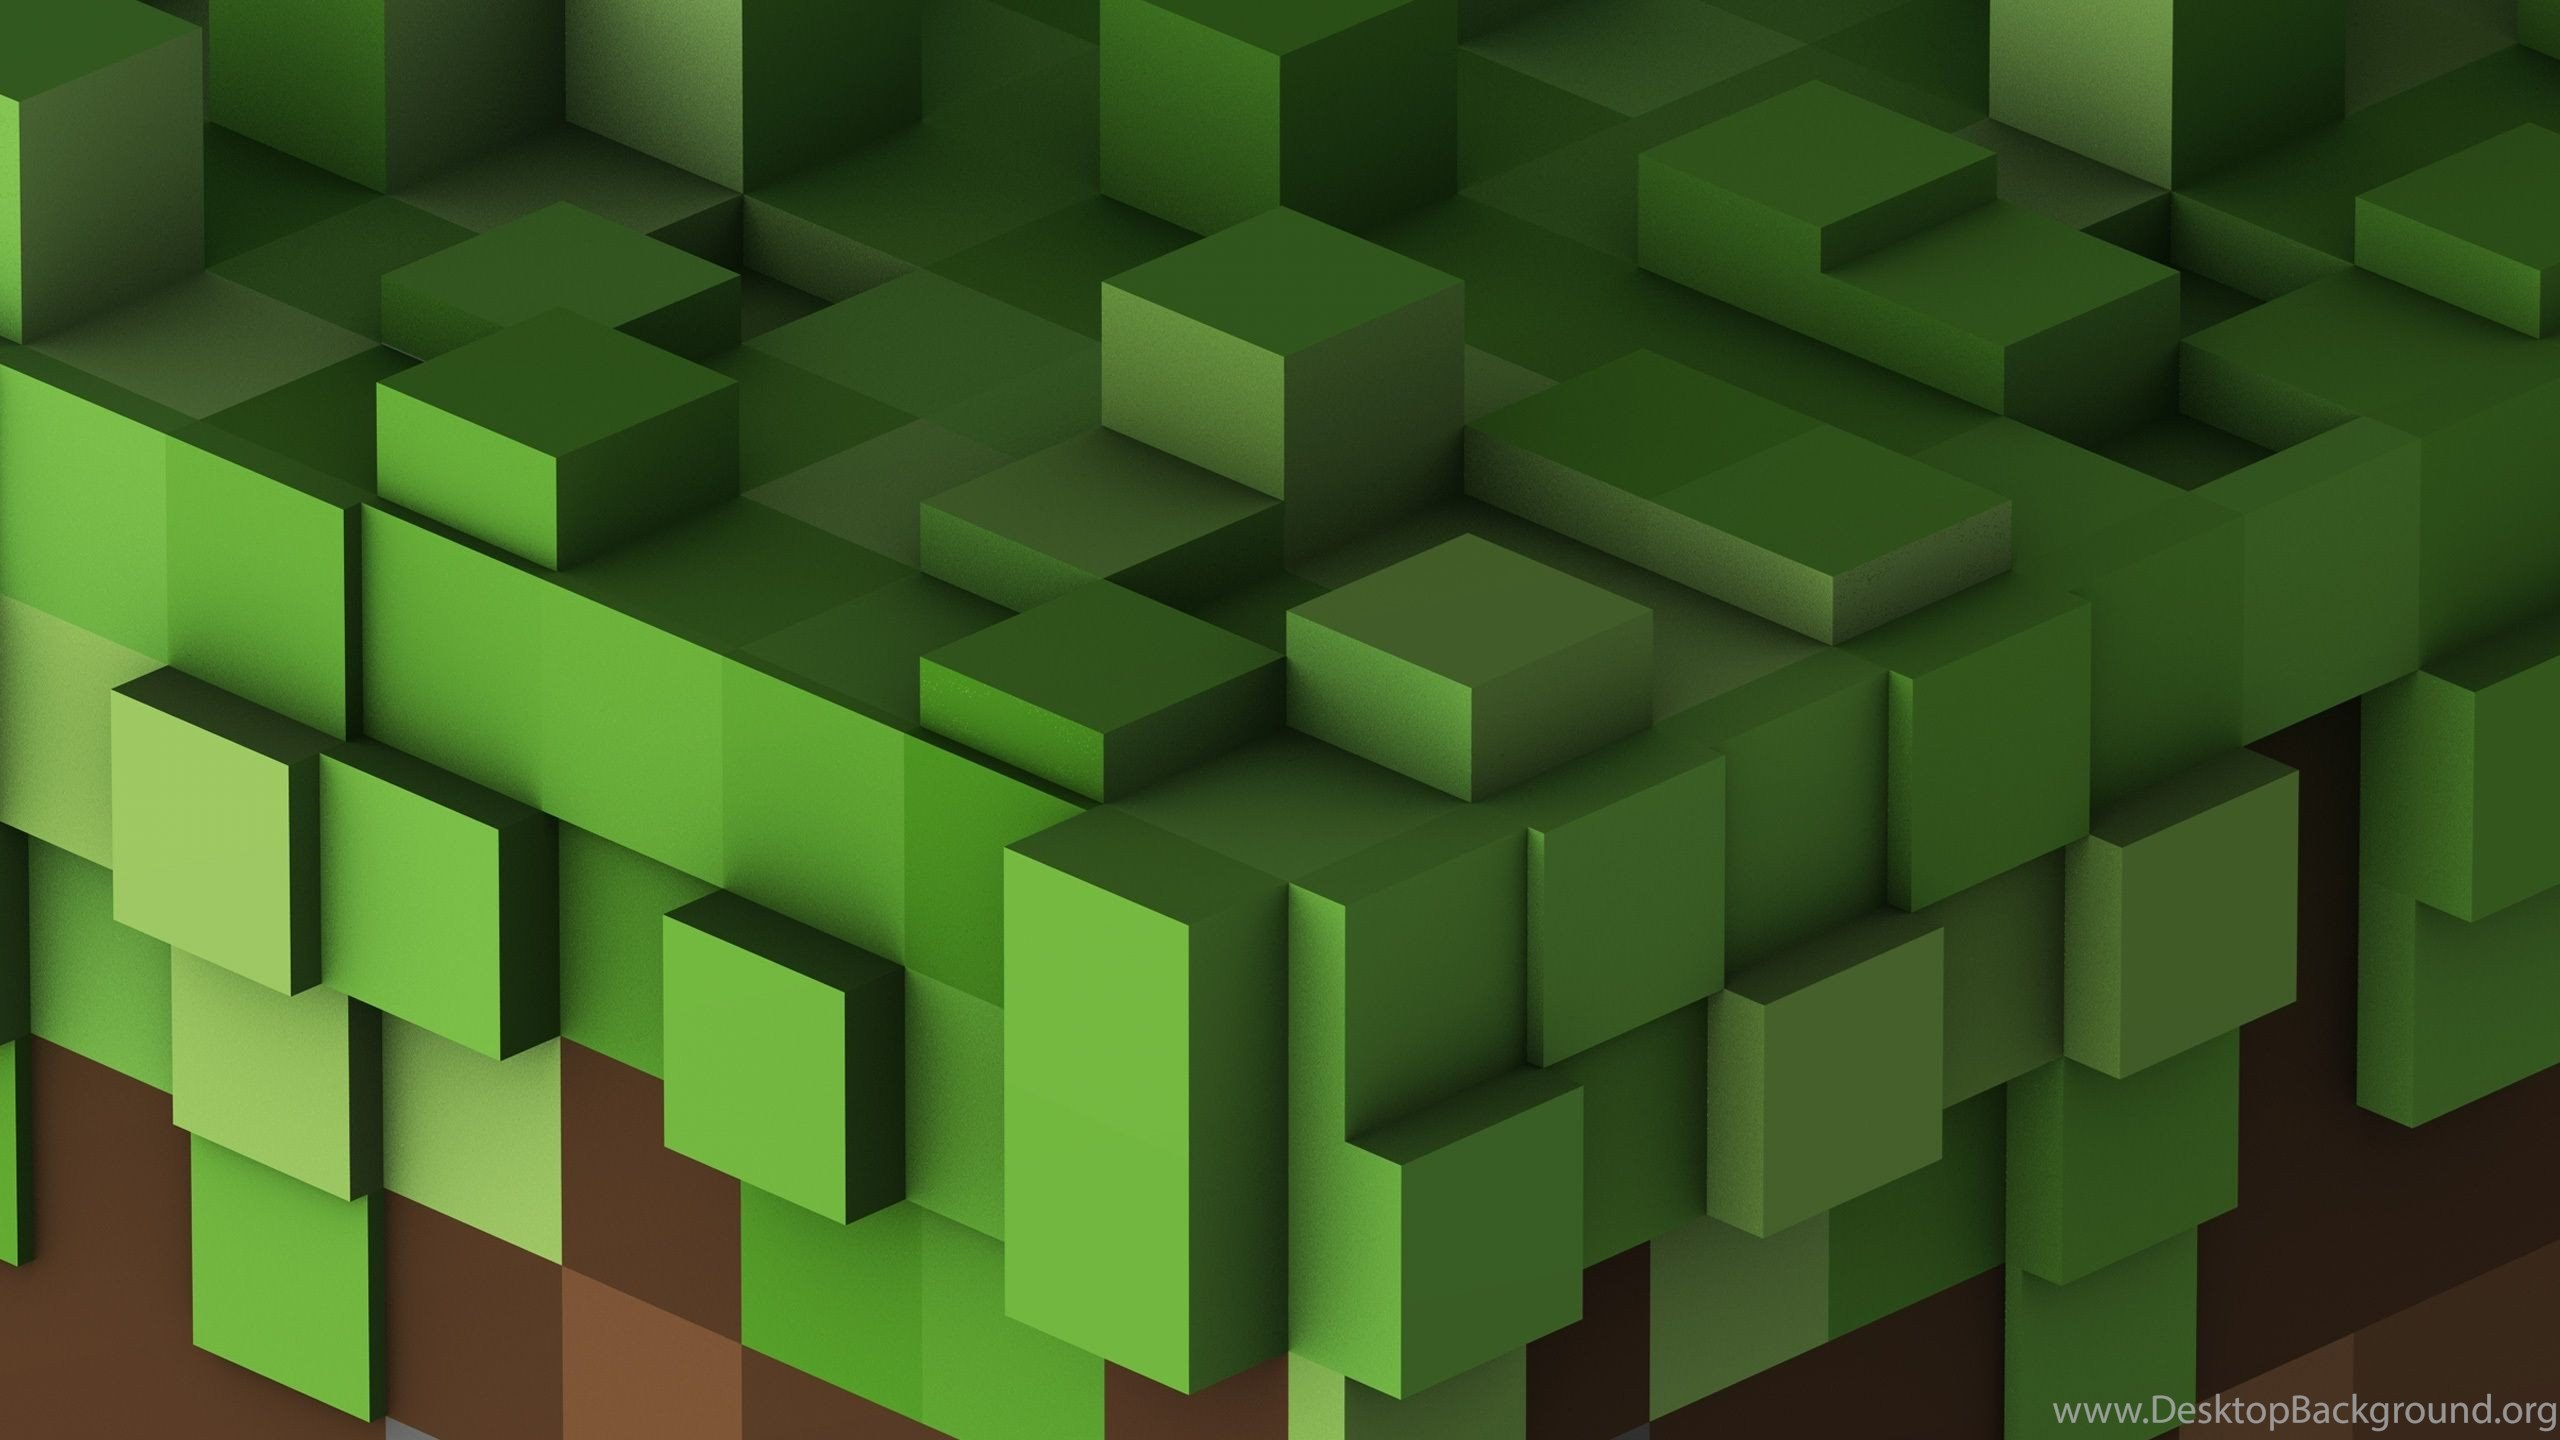 Cool Wallpaper Minecraft Tablet - 935899_wallpapers-minecraft-pictures-by-chewtoons-on-youtube-photo-in_2560x1440_h  Collection_314962.jpg